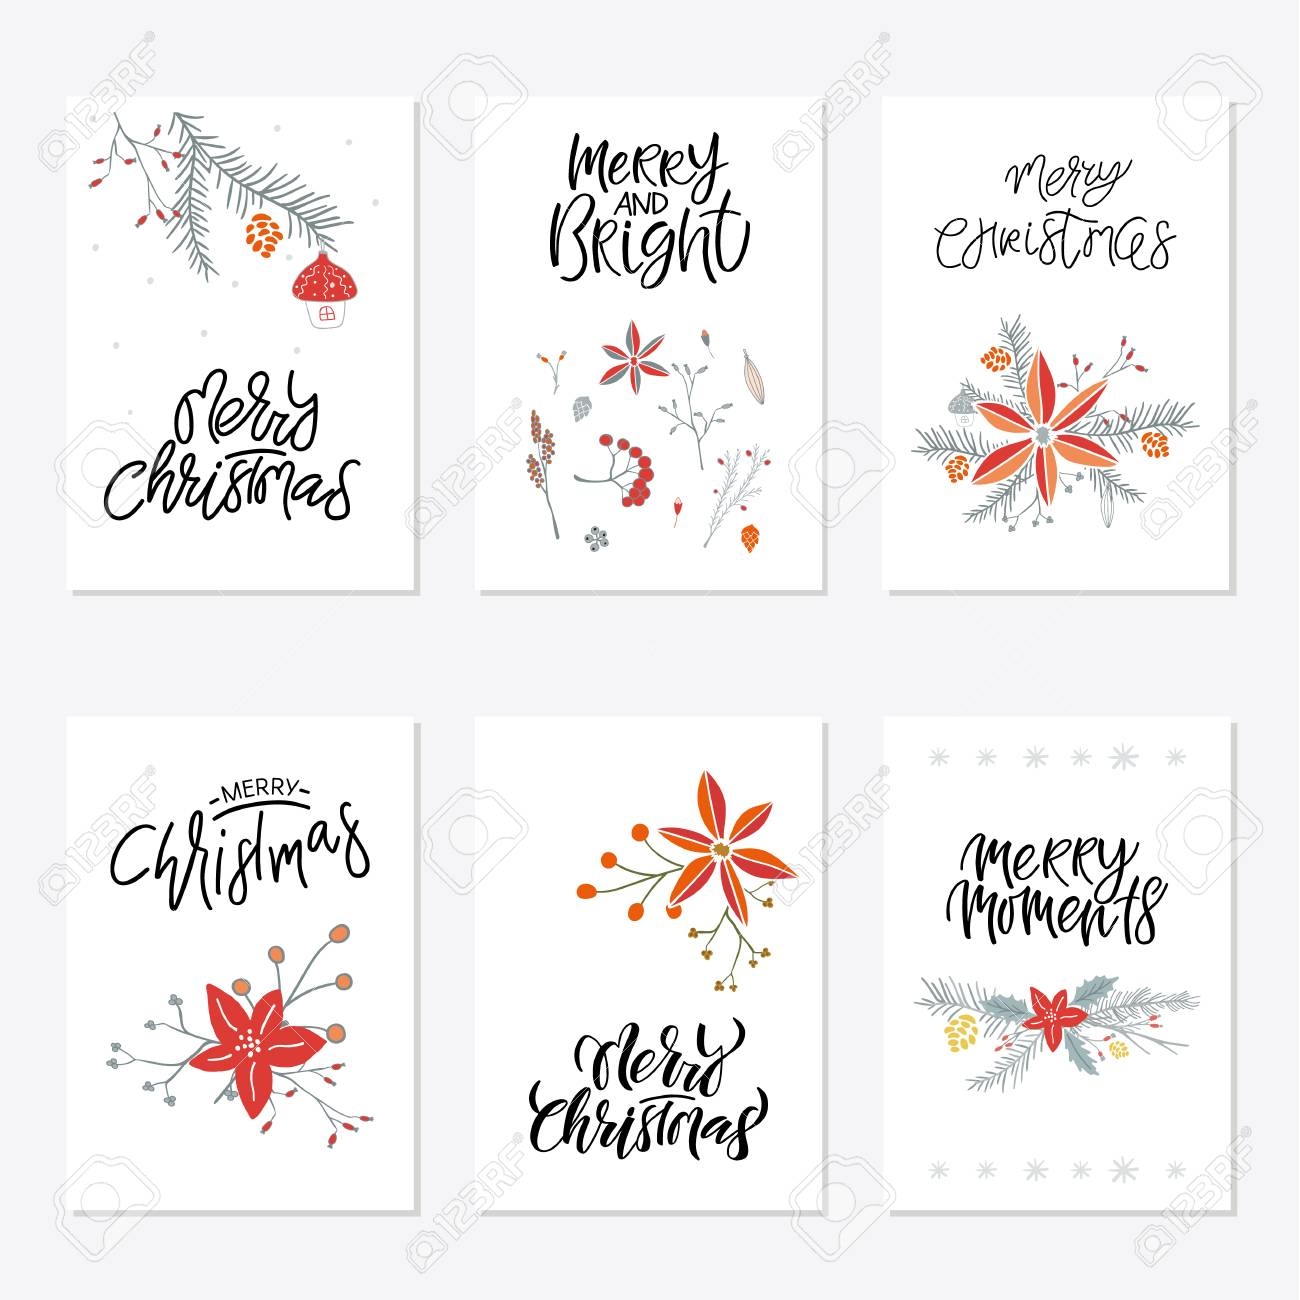 photo about Merry Christmas Printable known as Range of 6 adorable Merry Xmas present playing cards. Fixed of 6 printable..